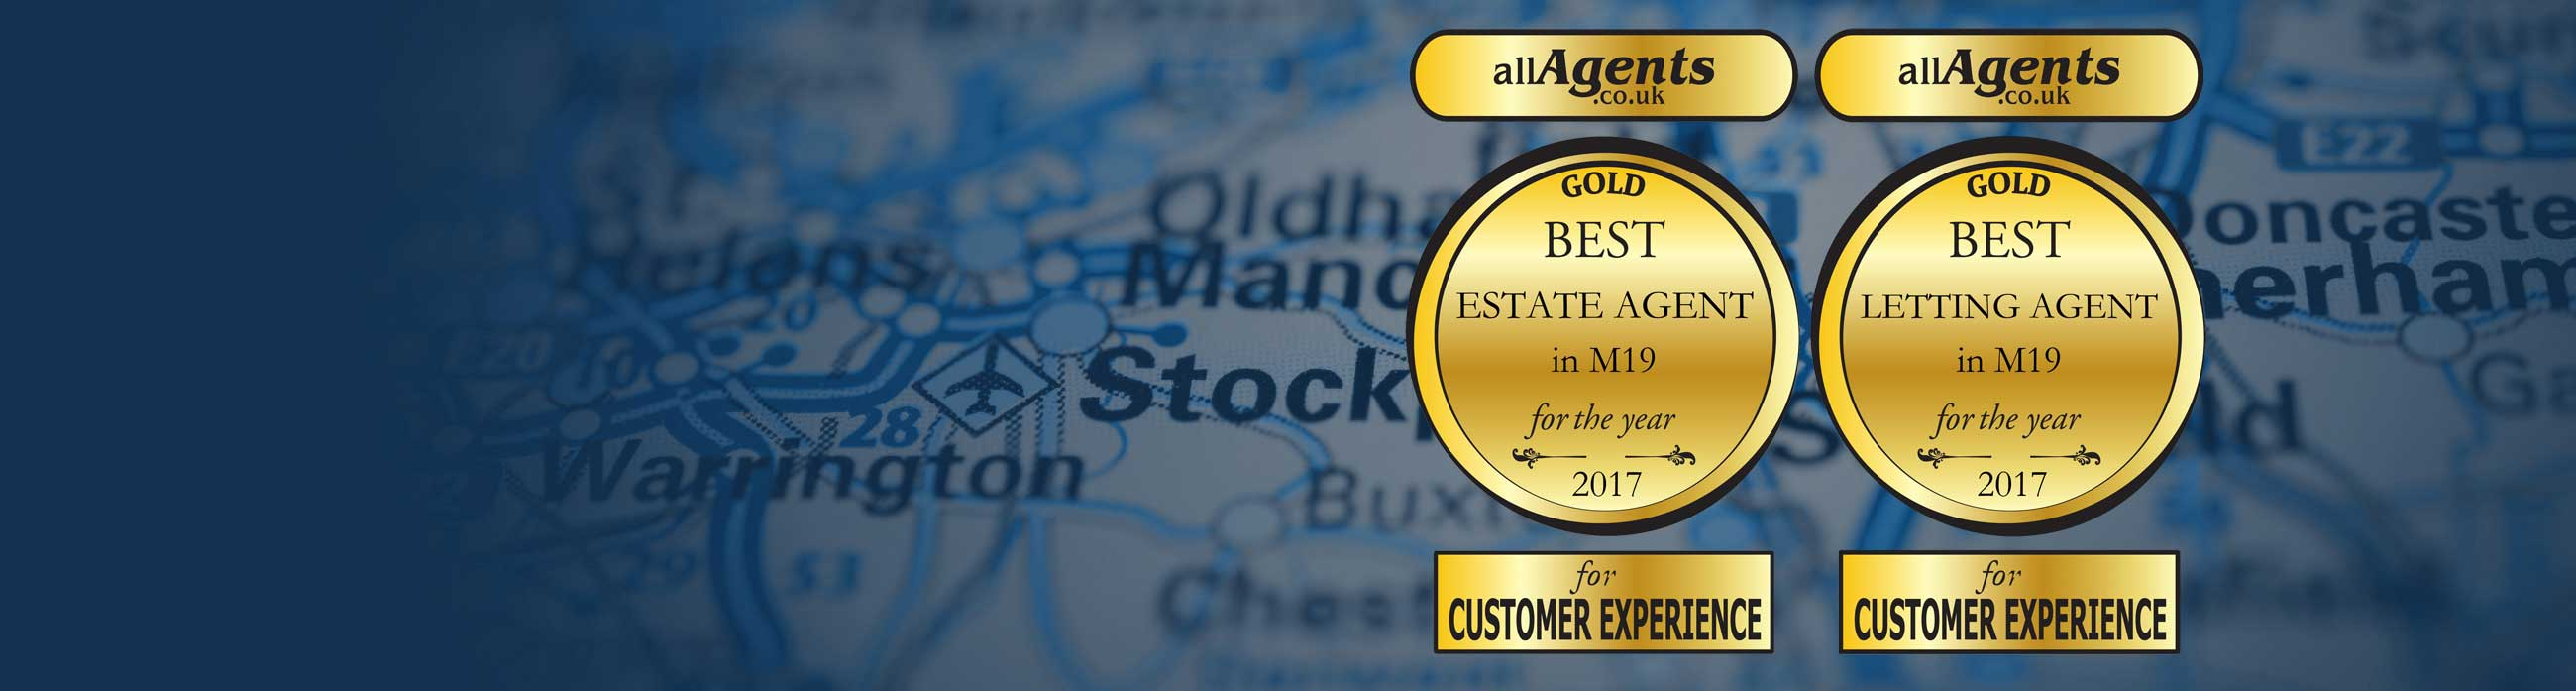 Award Winning Agents M19 - All Agents